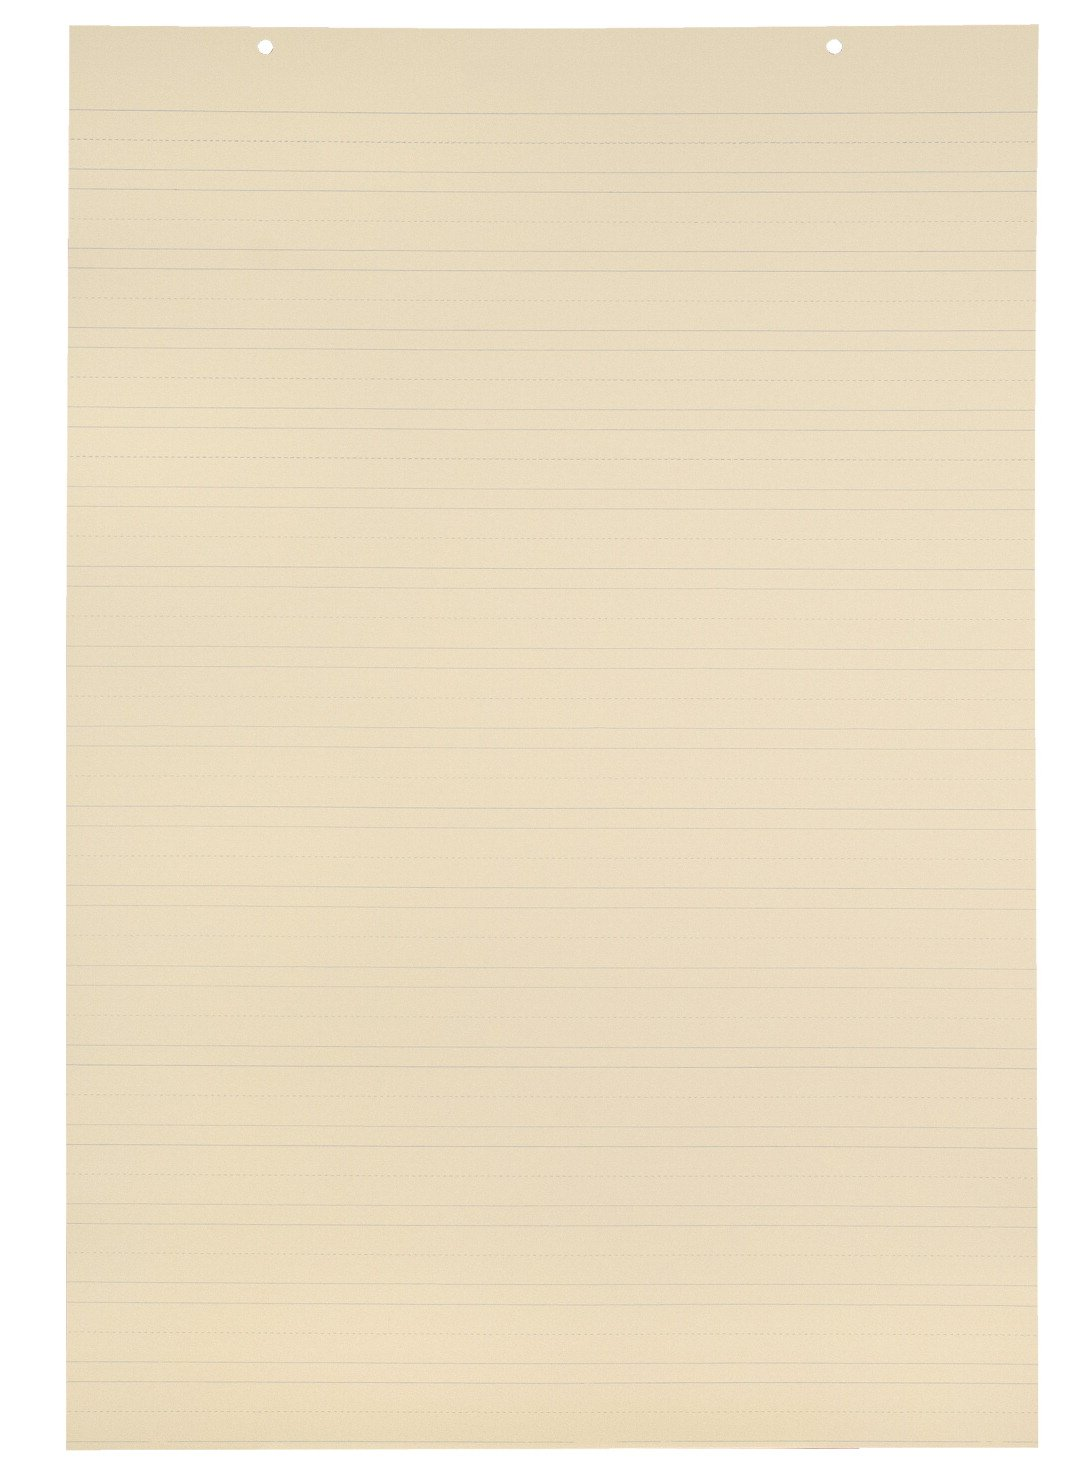 School Smart Manila Tag Chart Paper - 2 Ft x 3 Ft - Pack of 100 (6435)